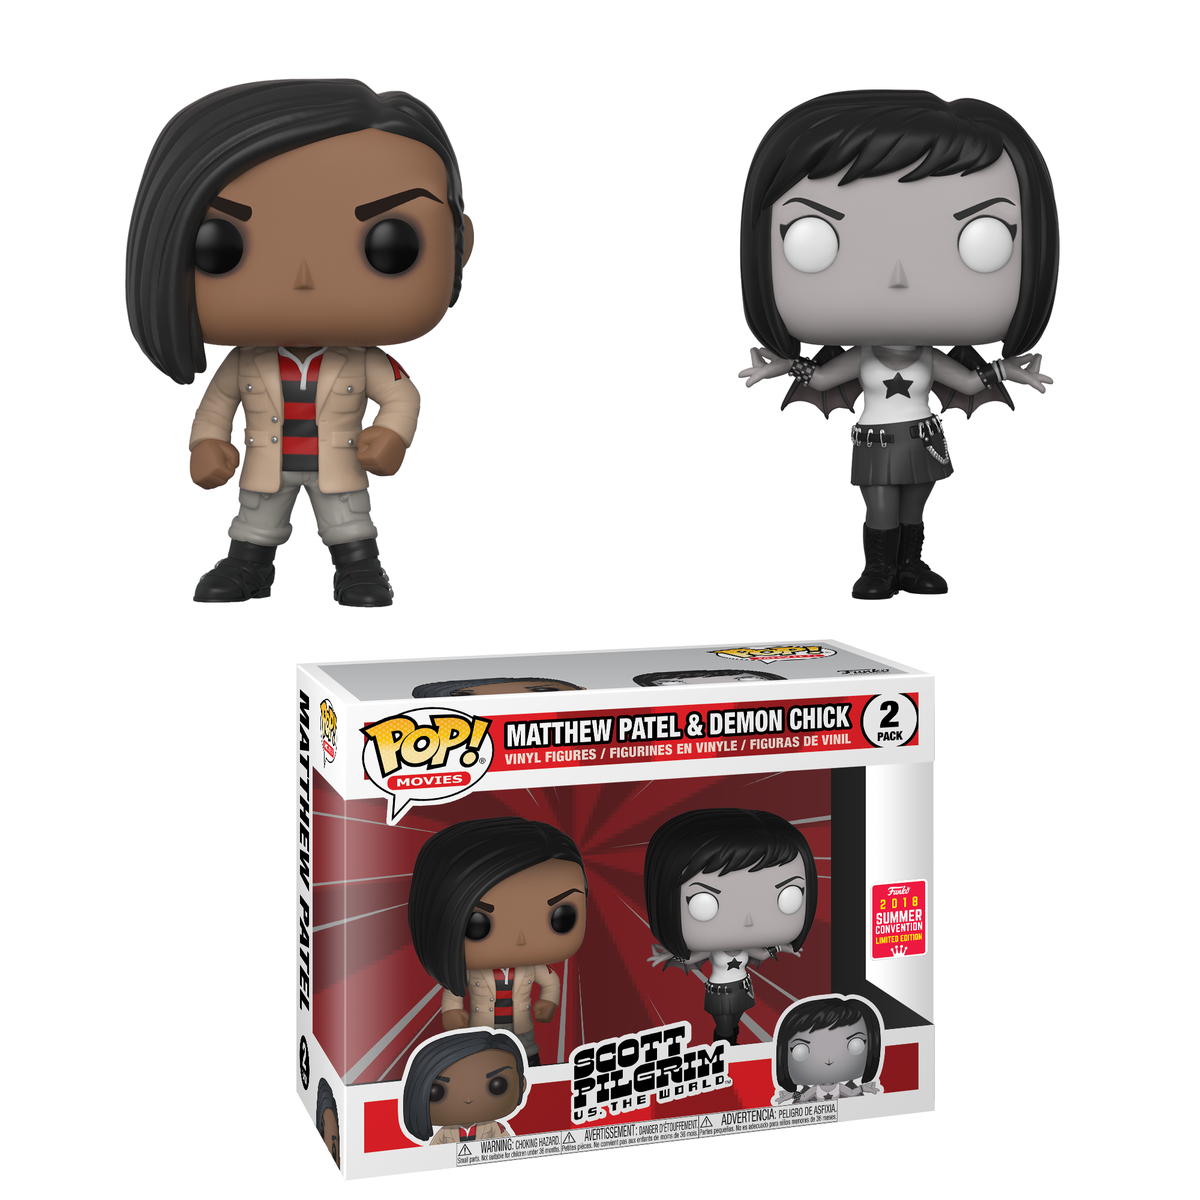 RT &amp; follow @OriginalFunko for the chance to win an #SDCC 2018 exclusive Matthew Patel and Demon Chick Pop! 2-pack!<br>http://pic.twitter.com/QMaoao7cOu